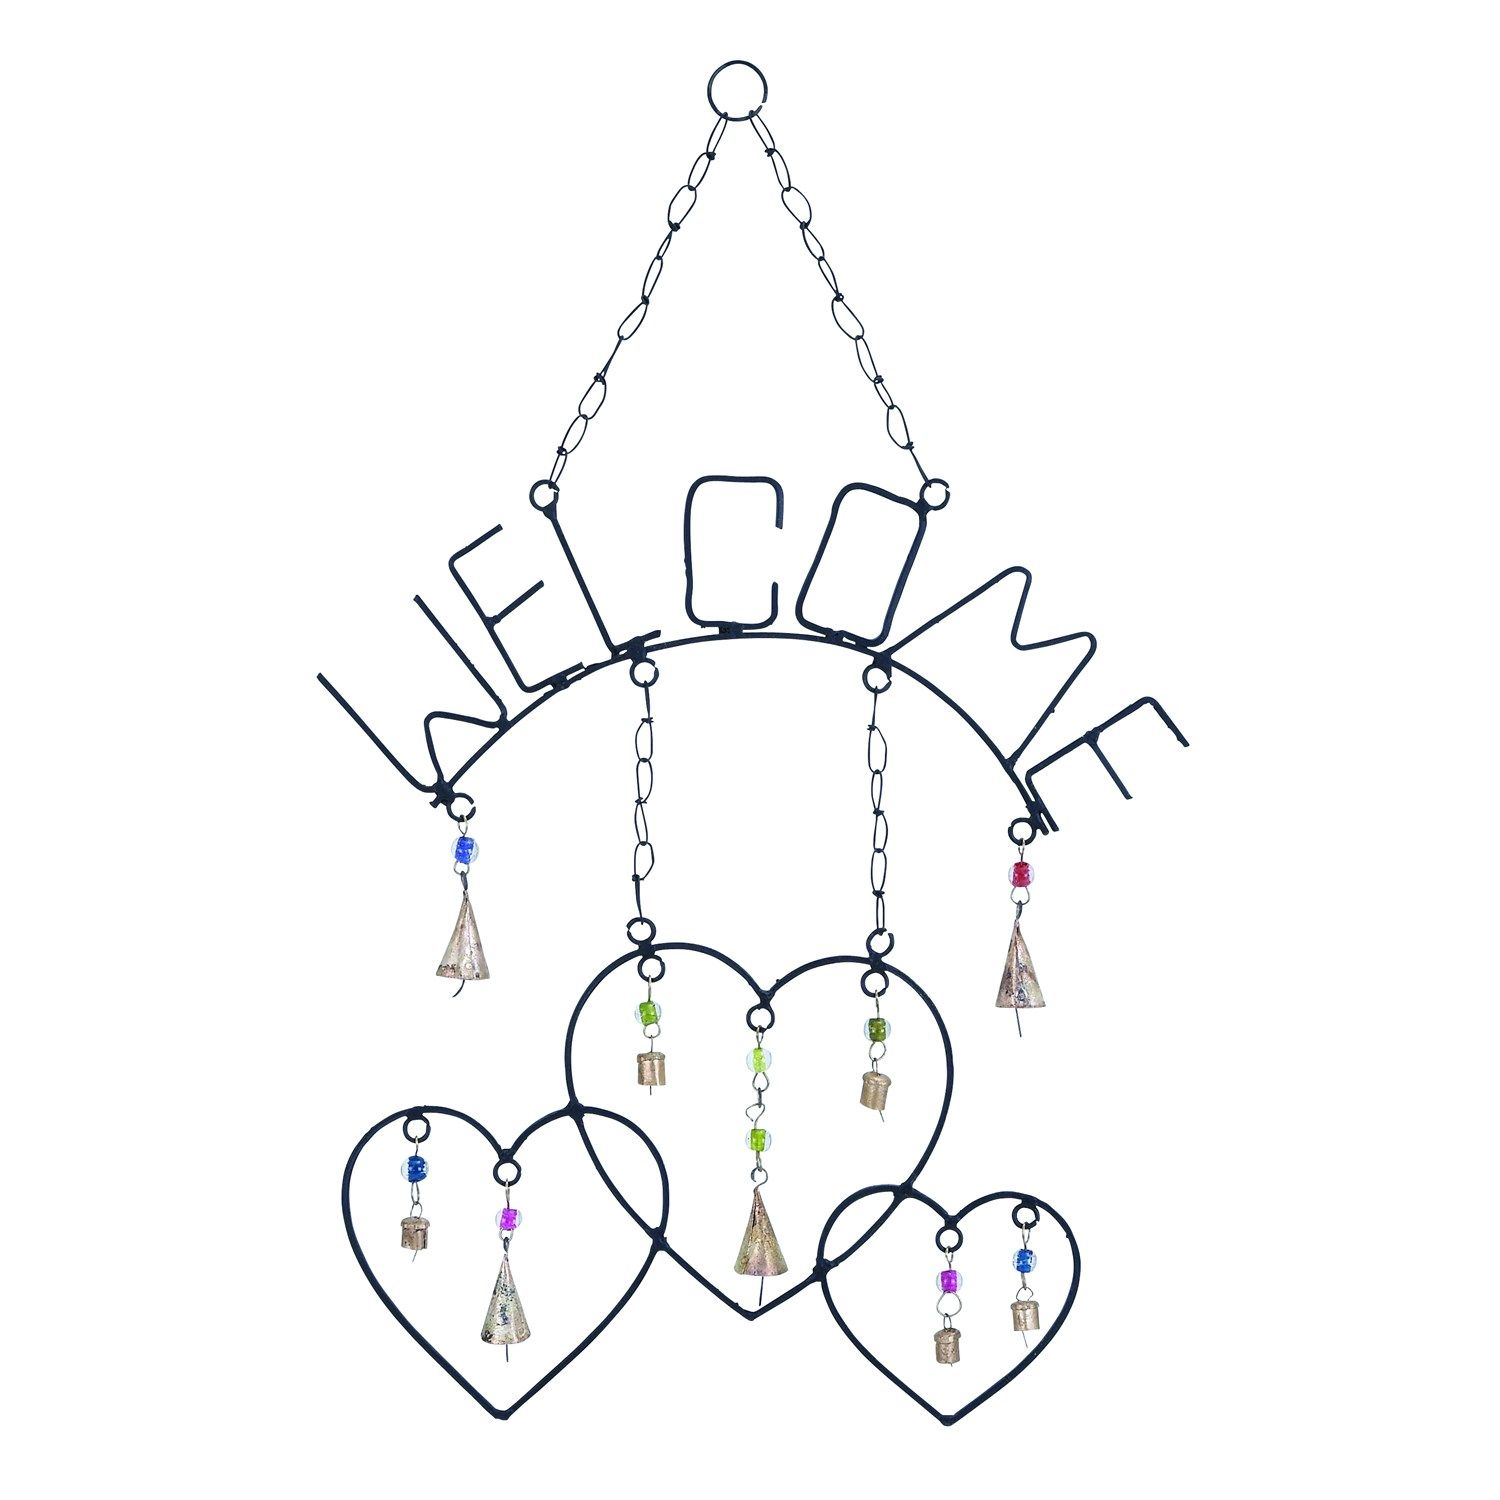 Woodland Imports 26748 Welcome Wind Chime with Metal Design